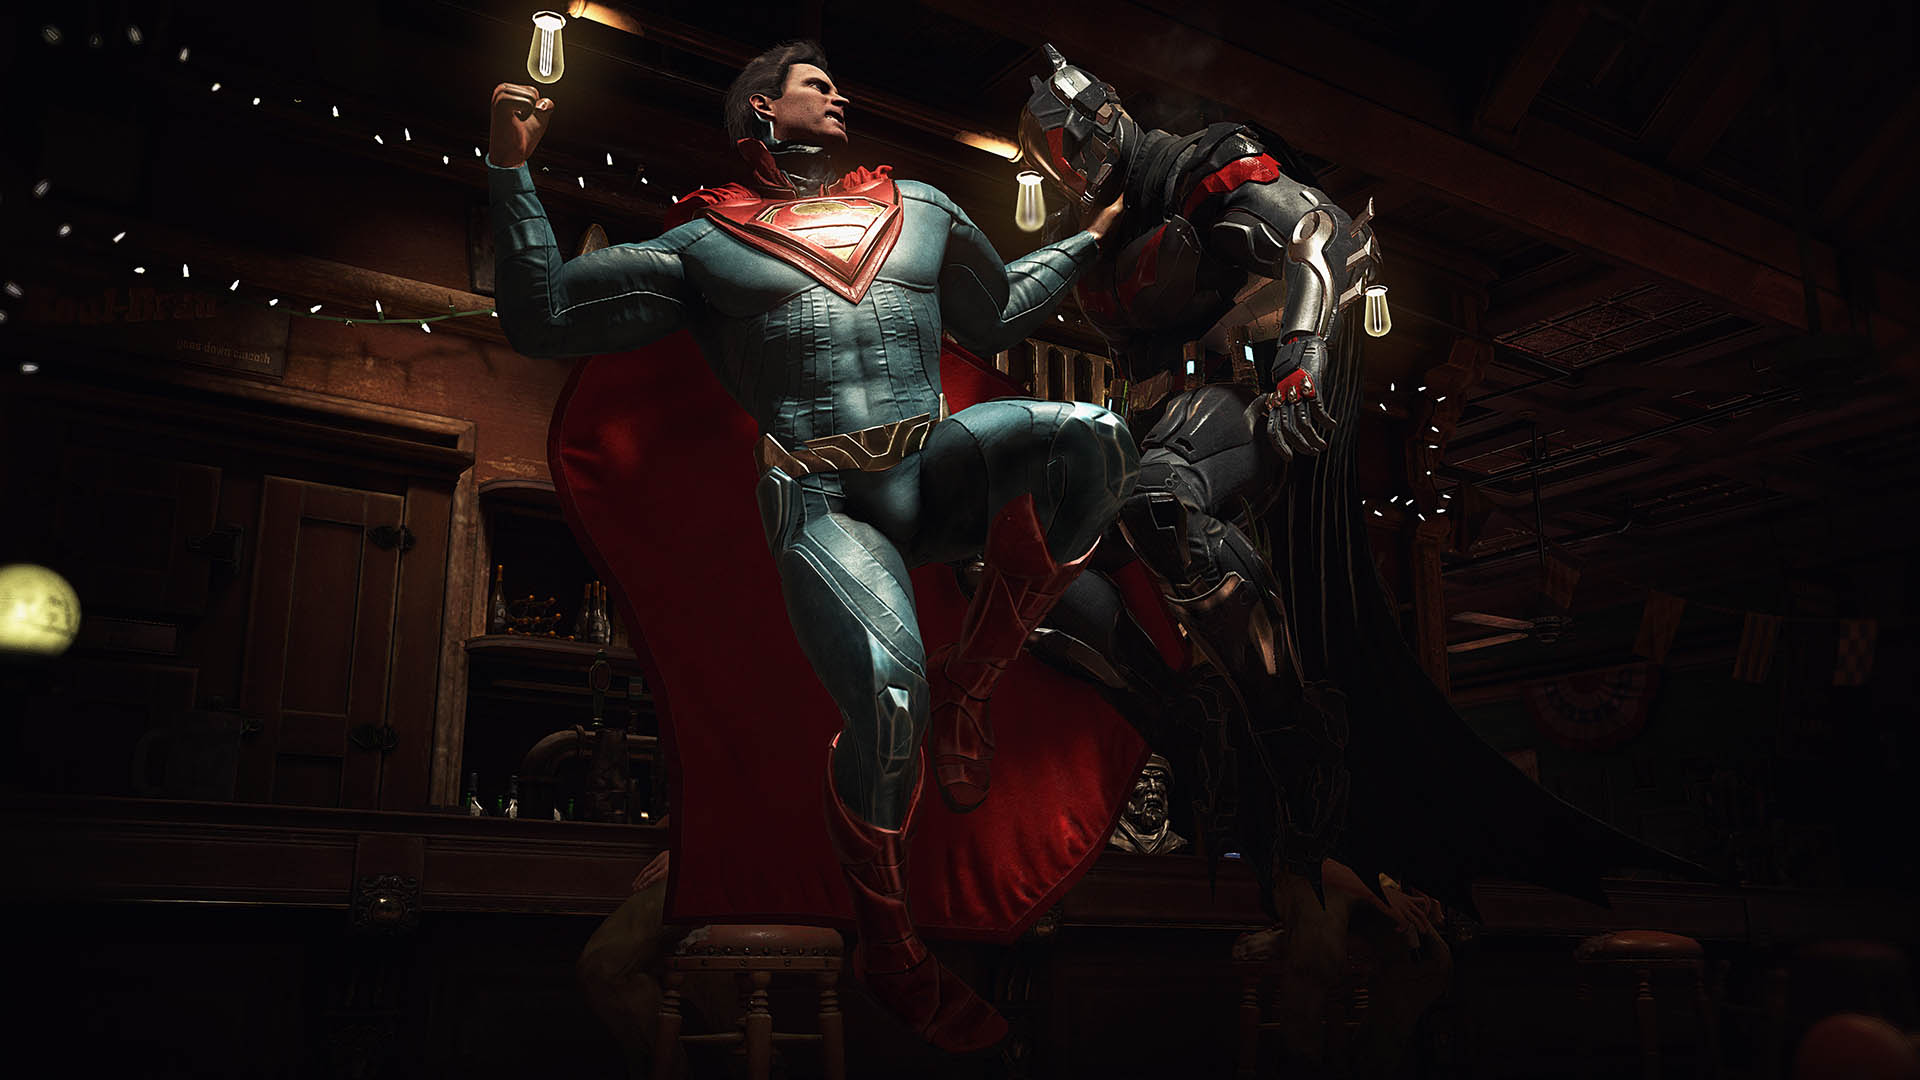 Injustice 2 Wallpapers High Quality Download Free